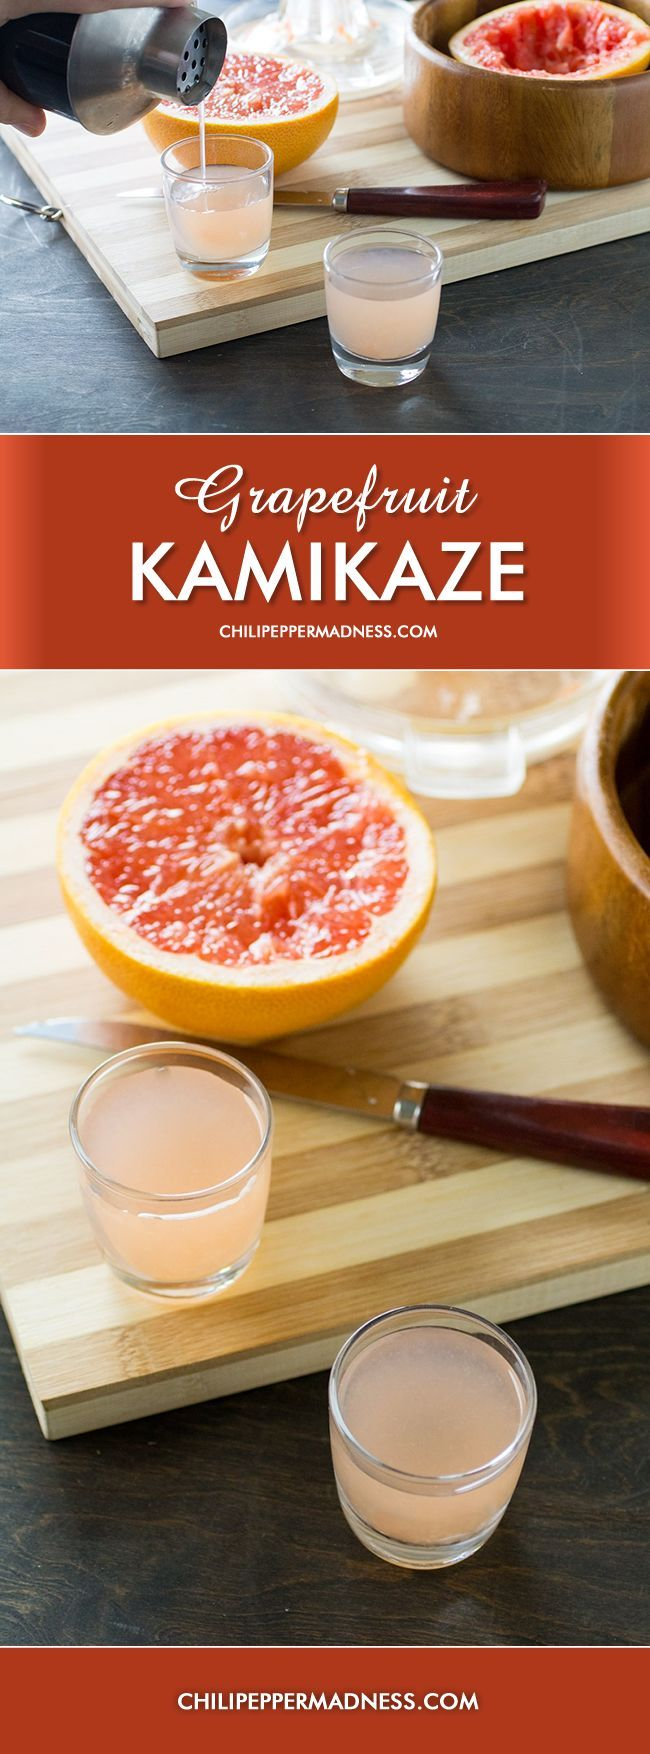 Grapefruit Kamikaze - A tart and citrusy vodka shot made with plenty of freshly squeezed grapefruit, triple sec, and your favorite vodka. A twist on an old recipe, the Kamikaze.